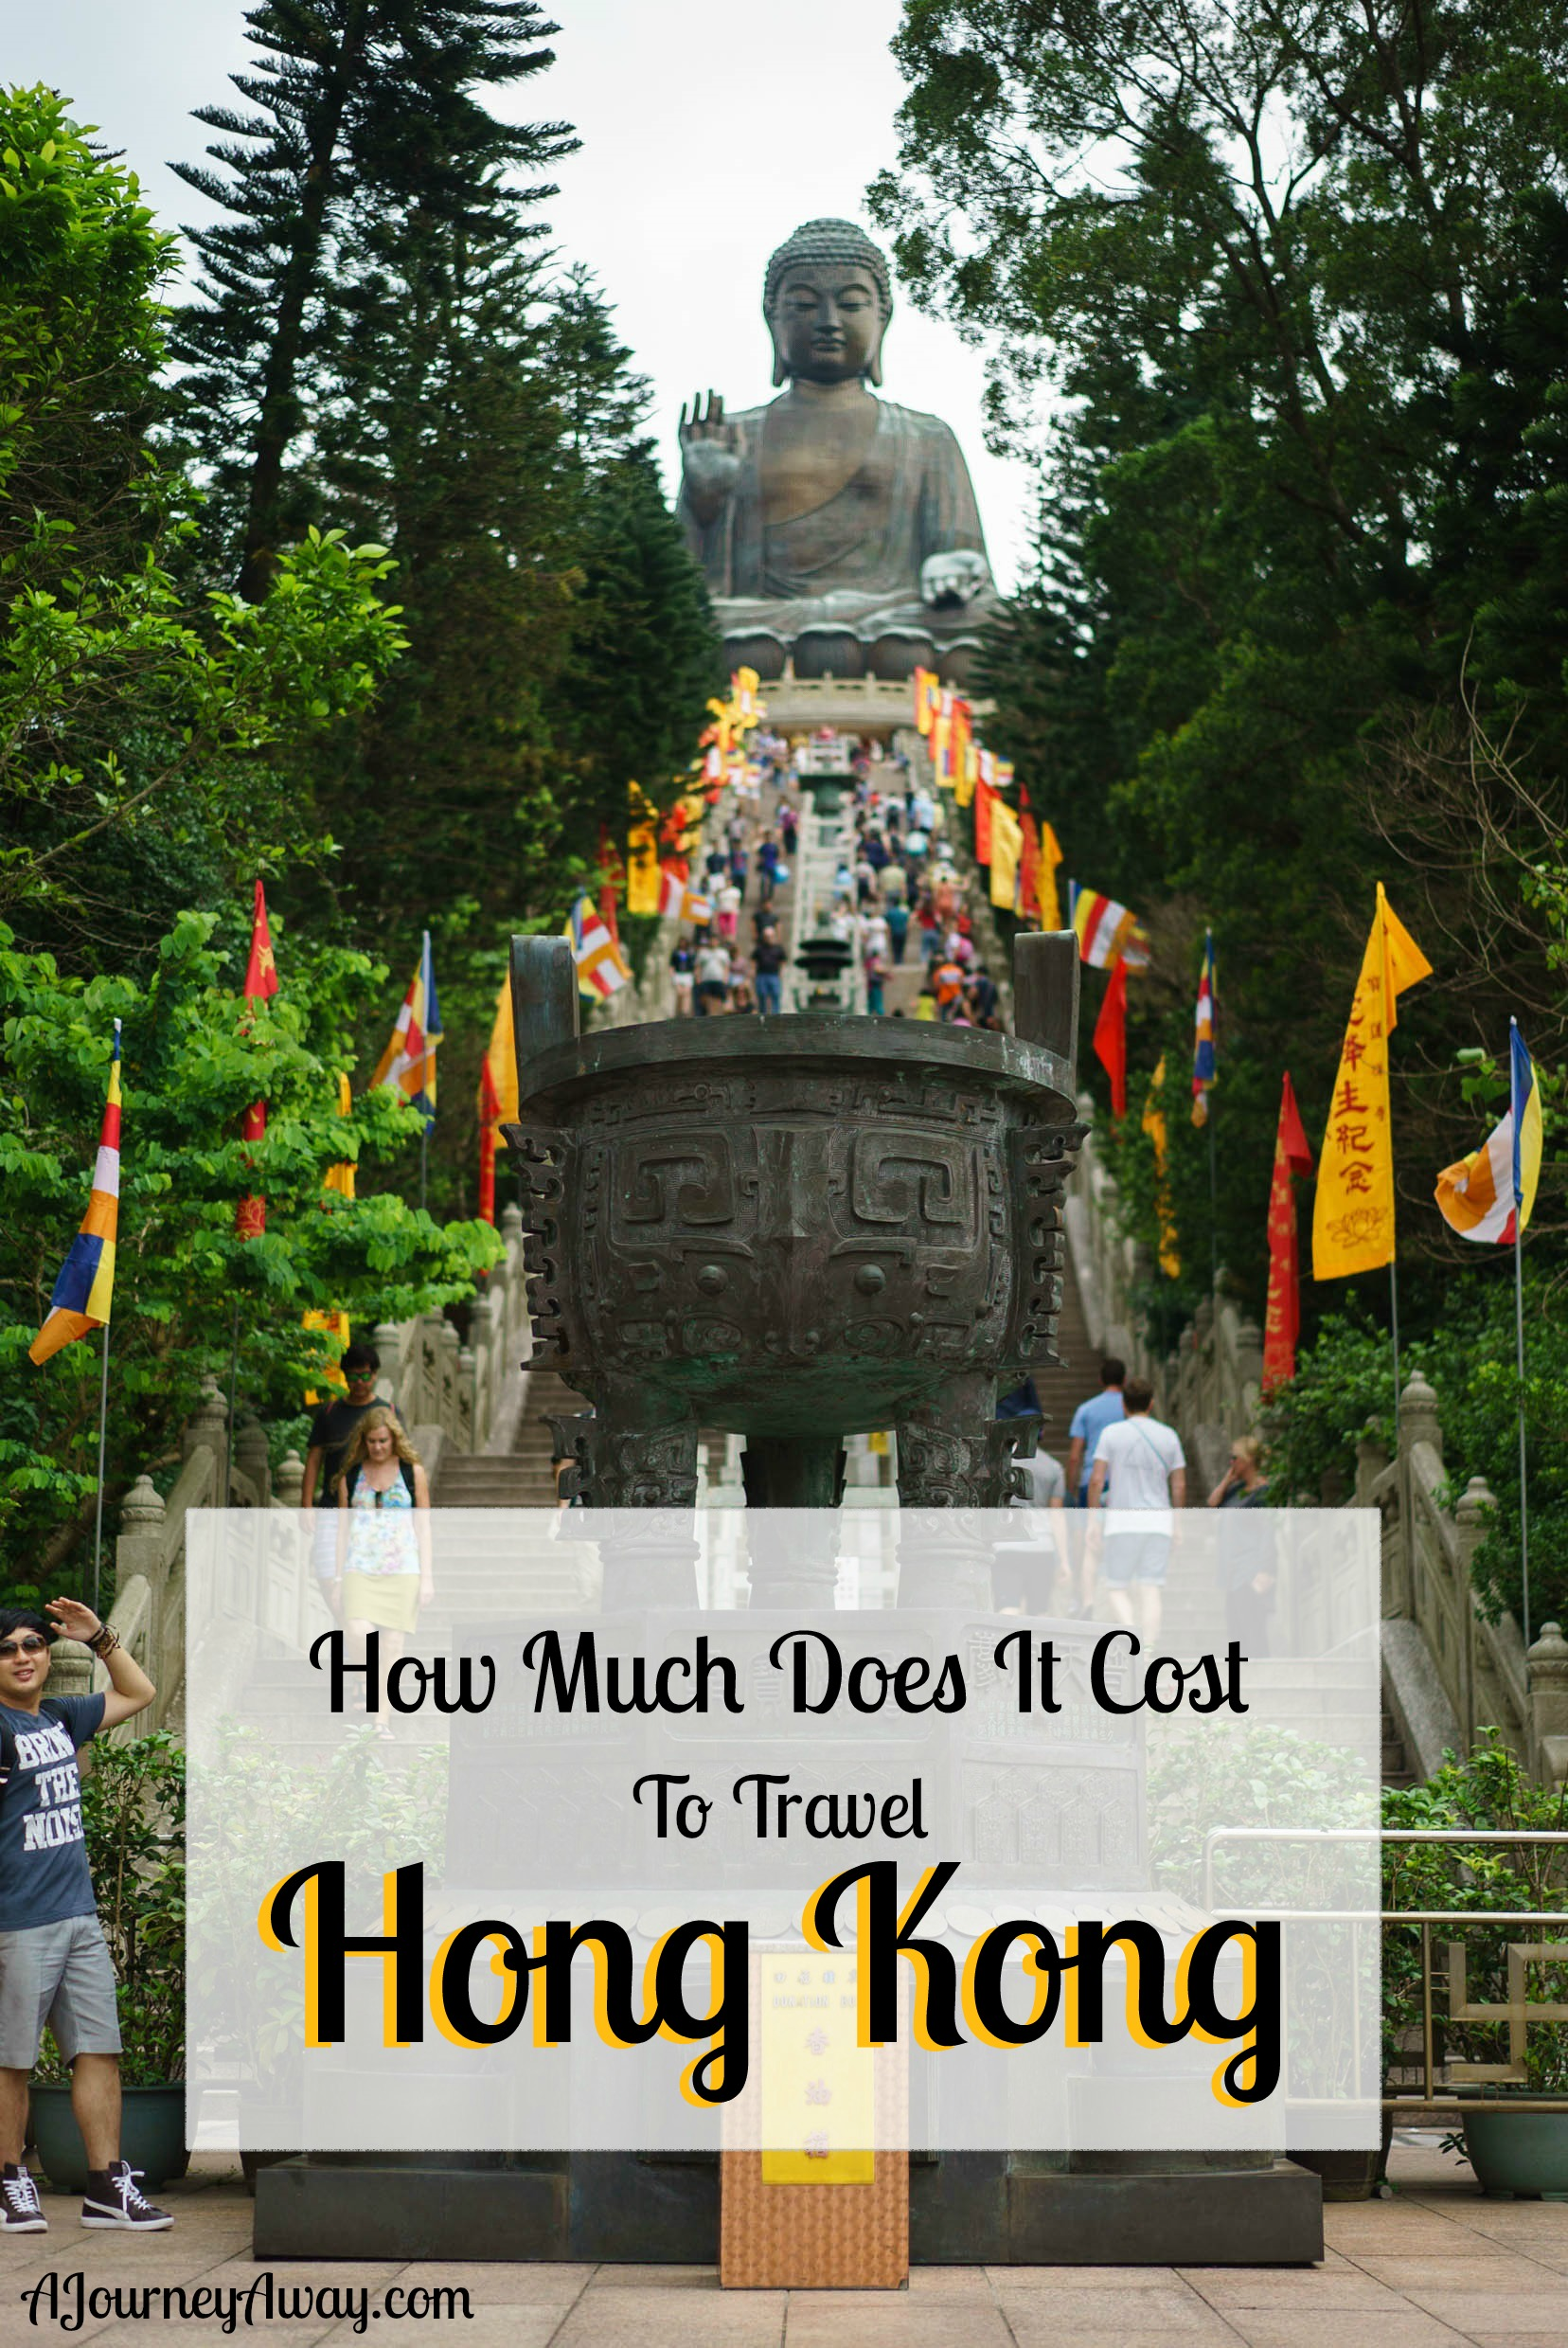 Travel budget: how much does it cost to travel Hong Kong? | A Journey Away travel blog